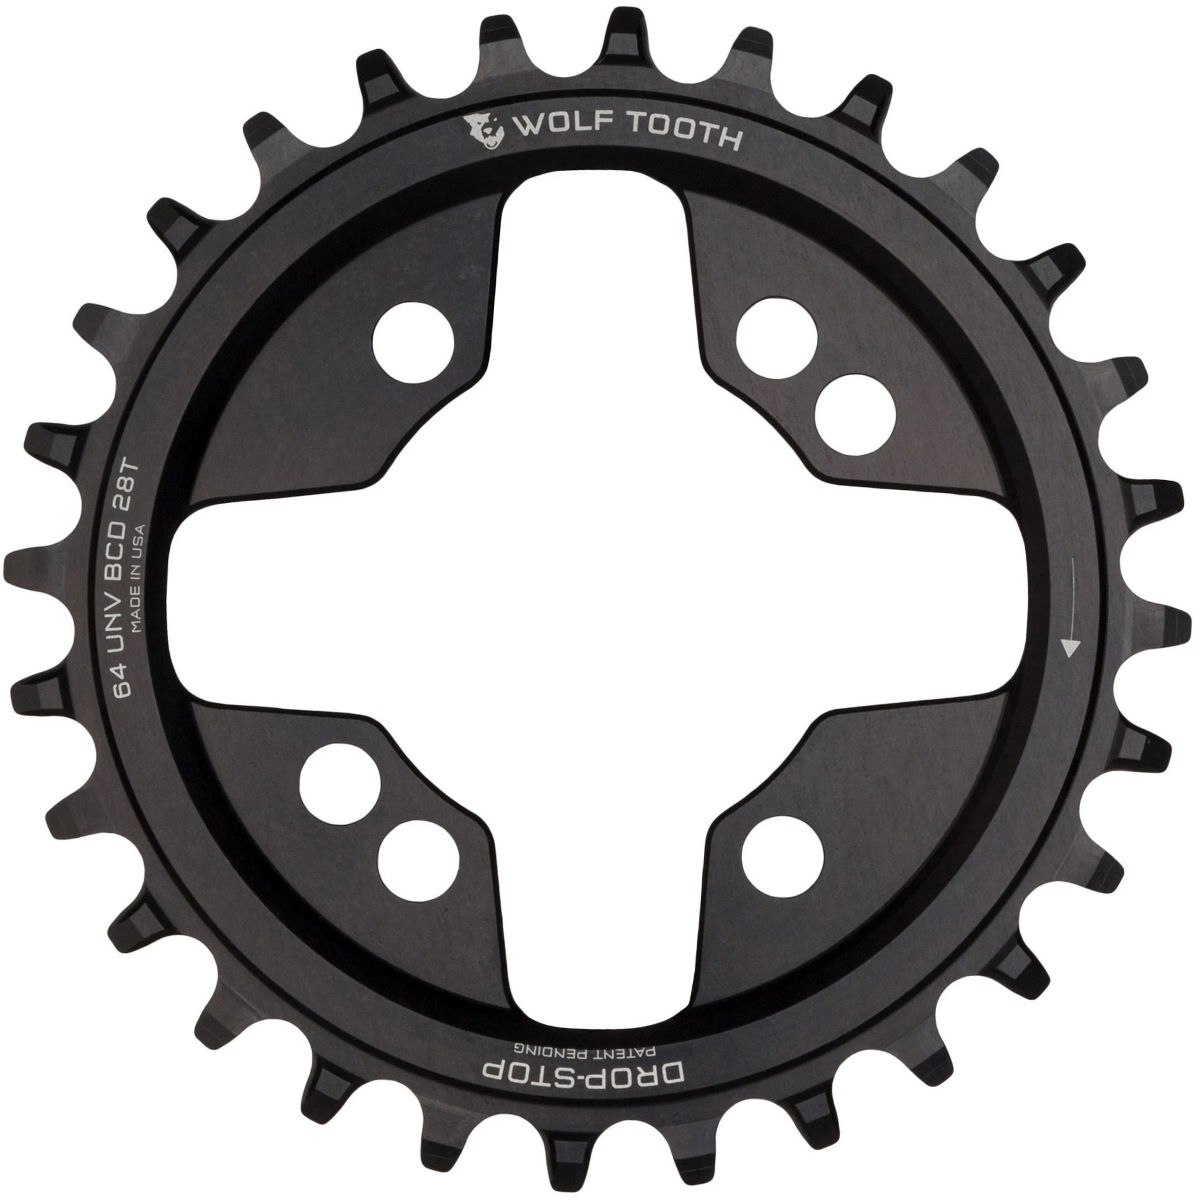 Wolf Tooth 64 Bcd Chainring - 26t Black  Chain Rings